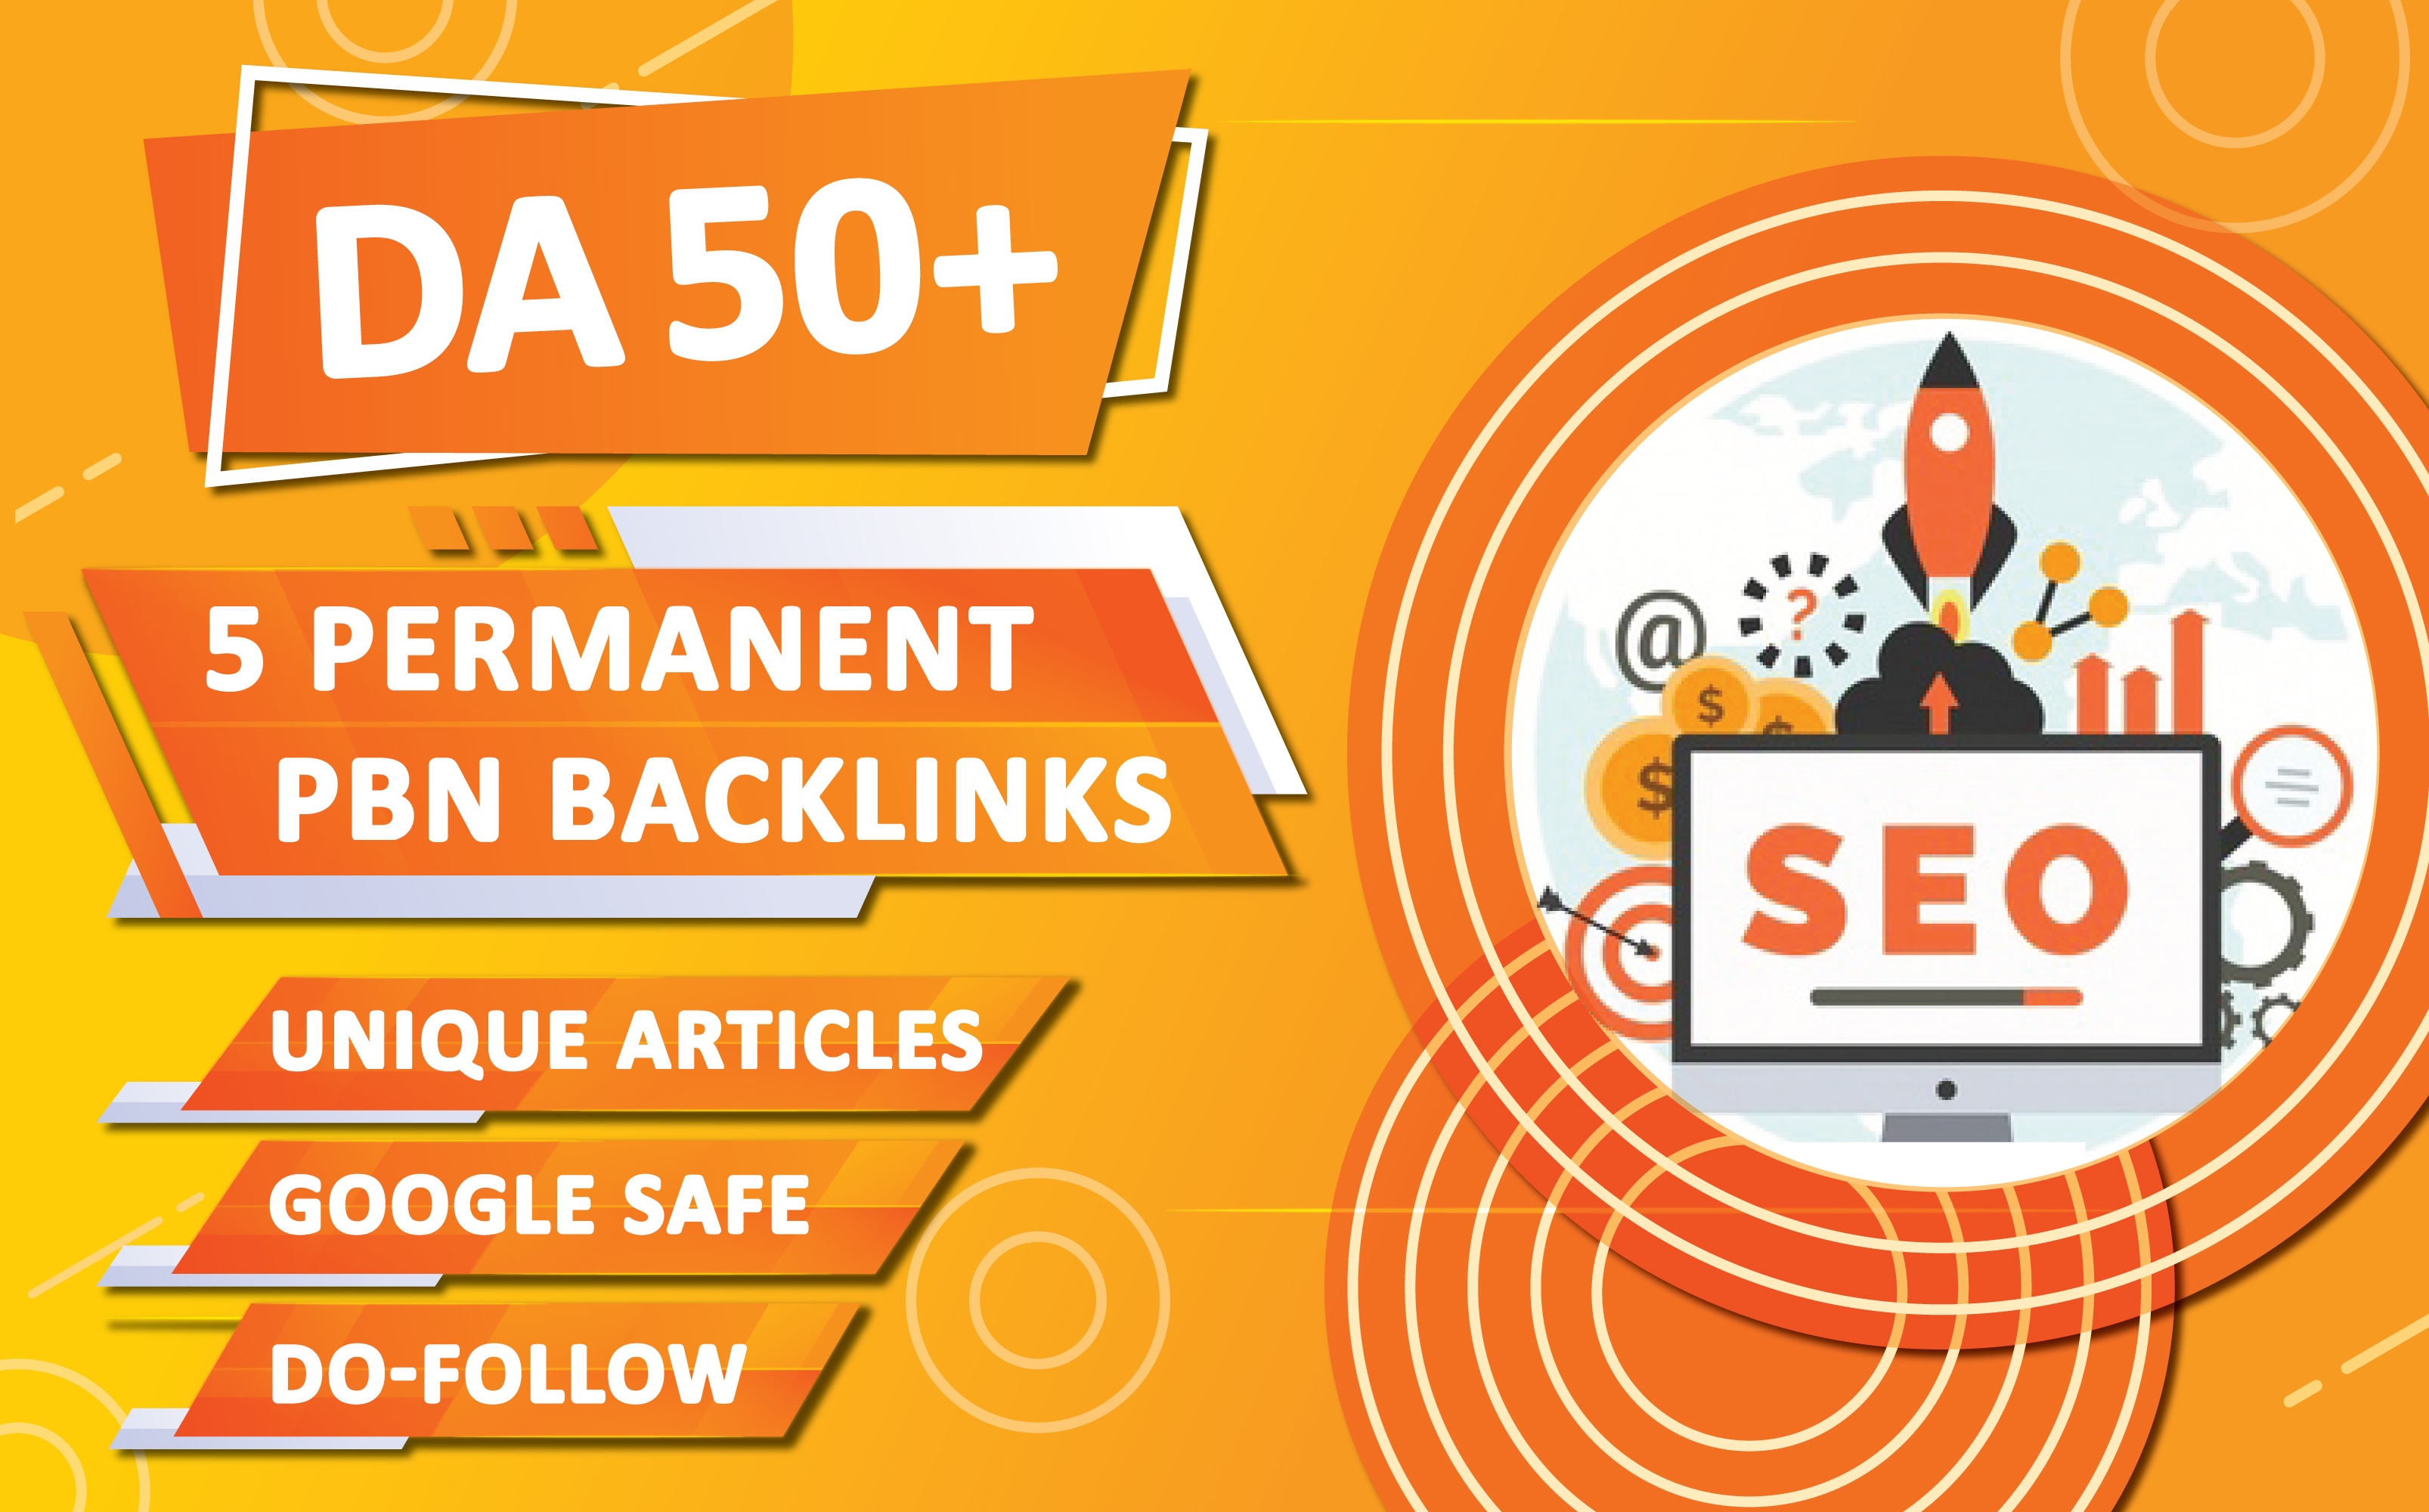 5 Permanent PBN backlinks DA 50+